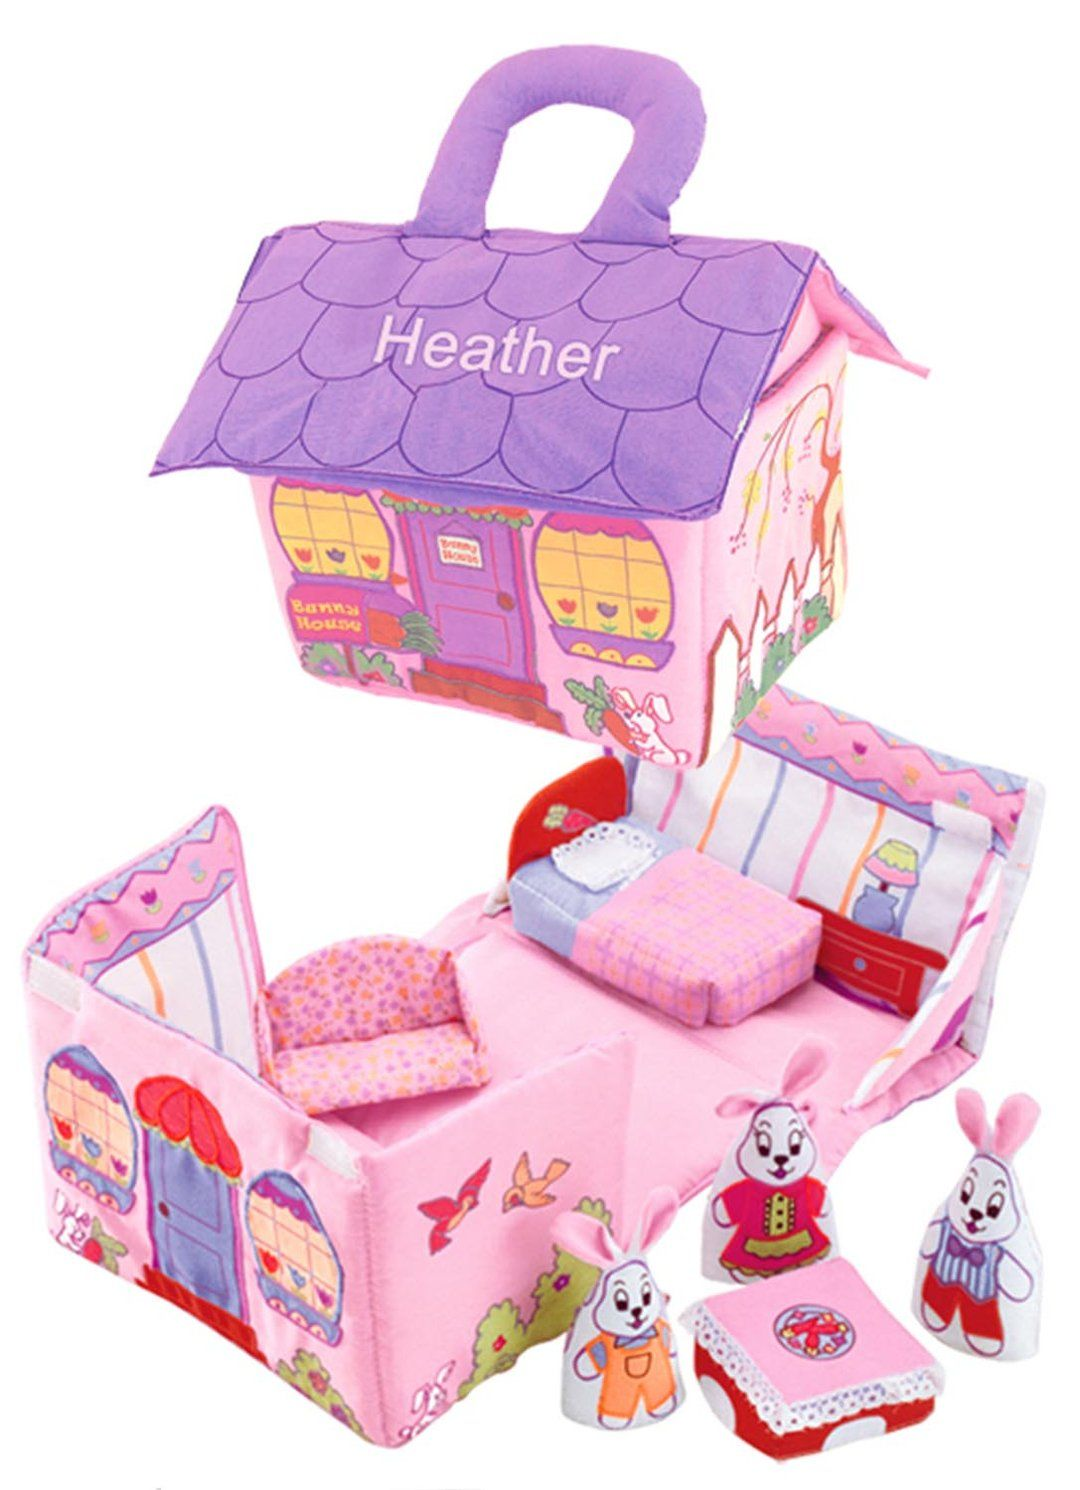 Bunny House in 2020 Bunny house, Toys for girls, Playset